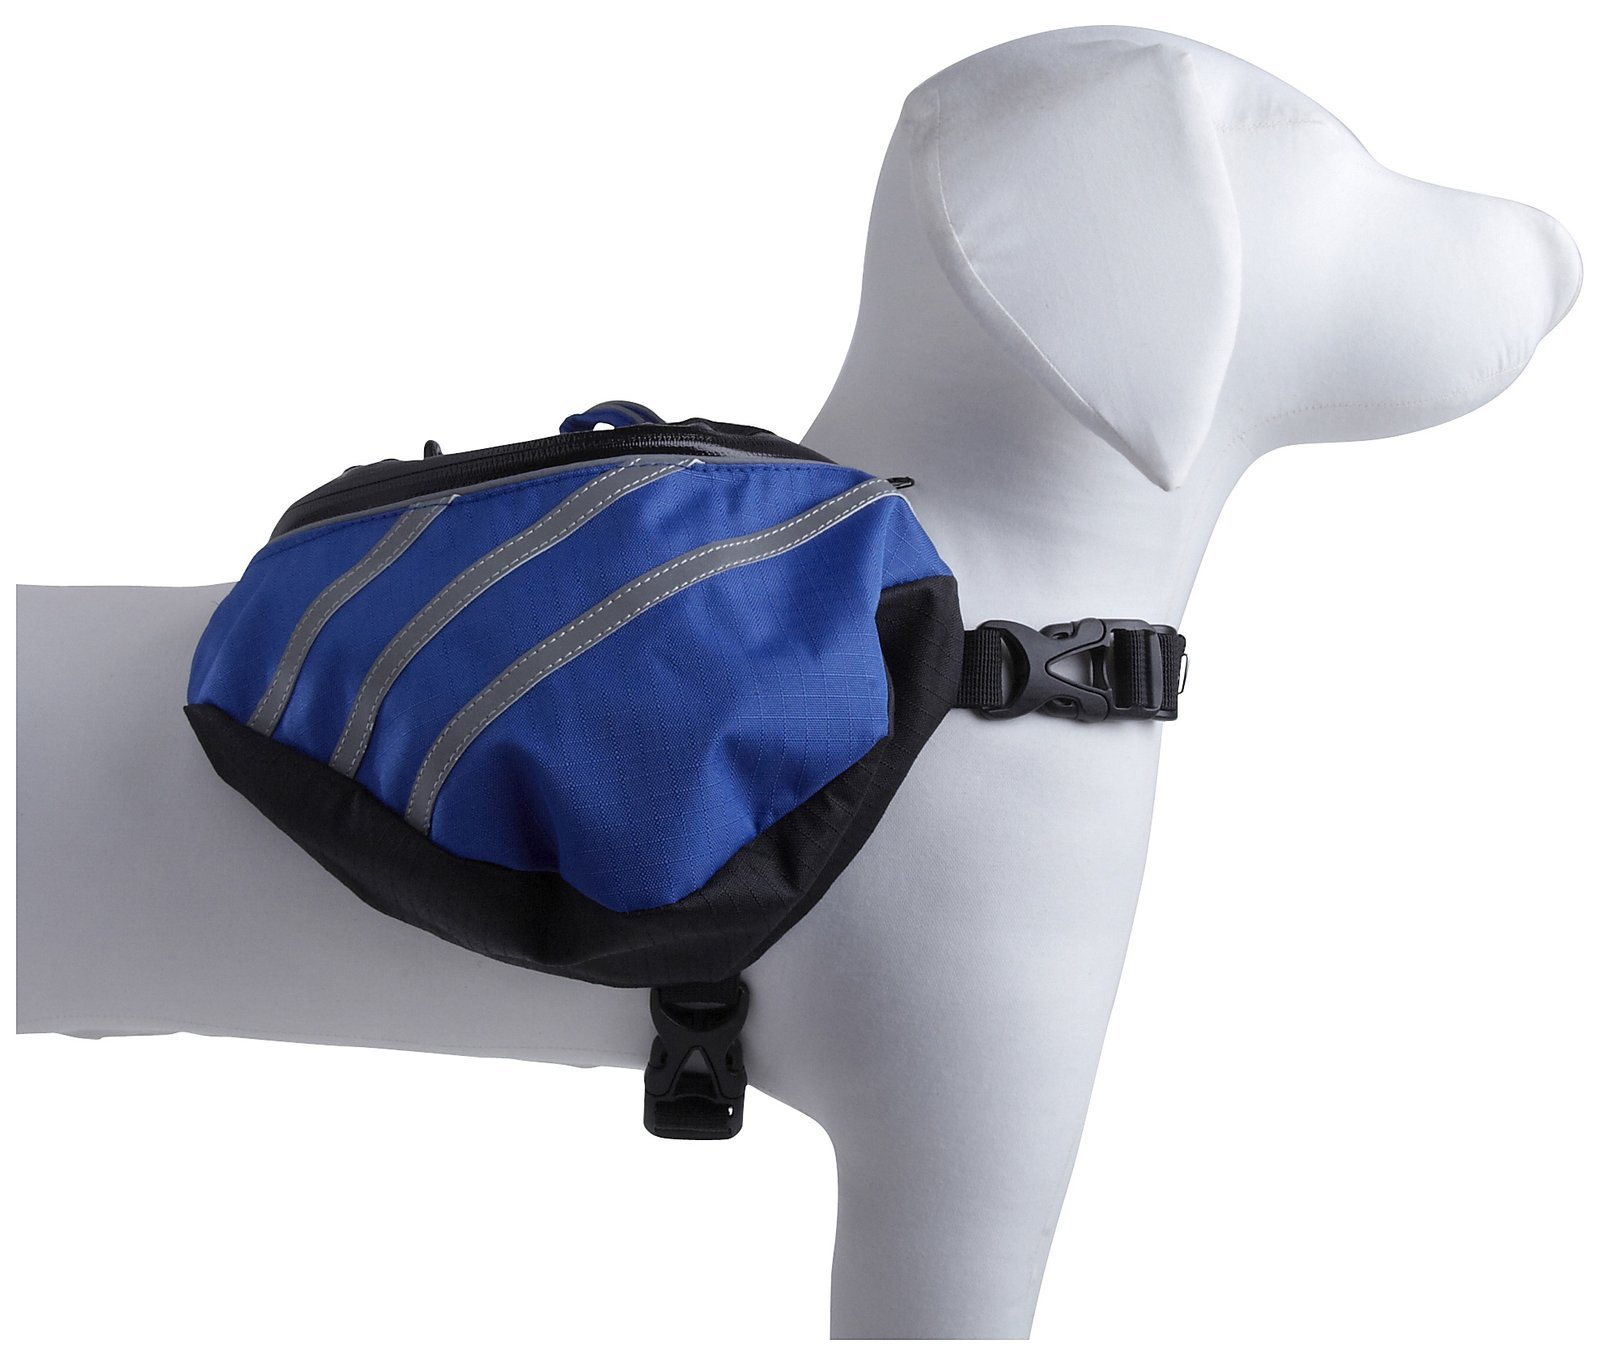 Pet Life Everest' DUPONT Waterproof Reflective Travel Fashion Designer Outdoor Camping Pet Dog Backpack Carrier, Large, Blue